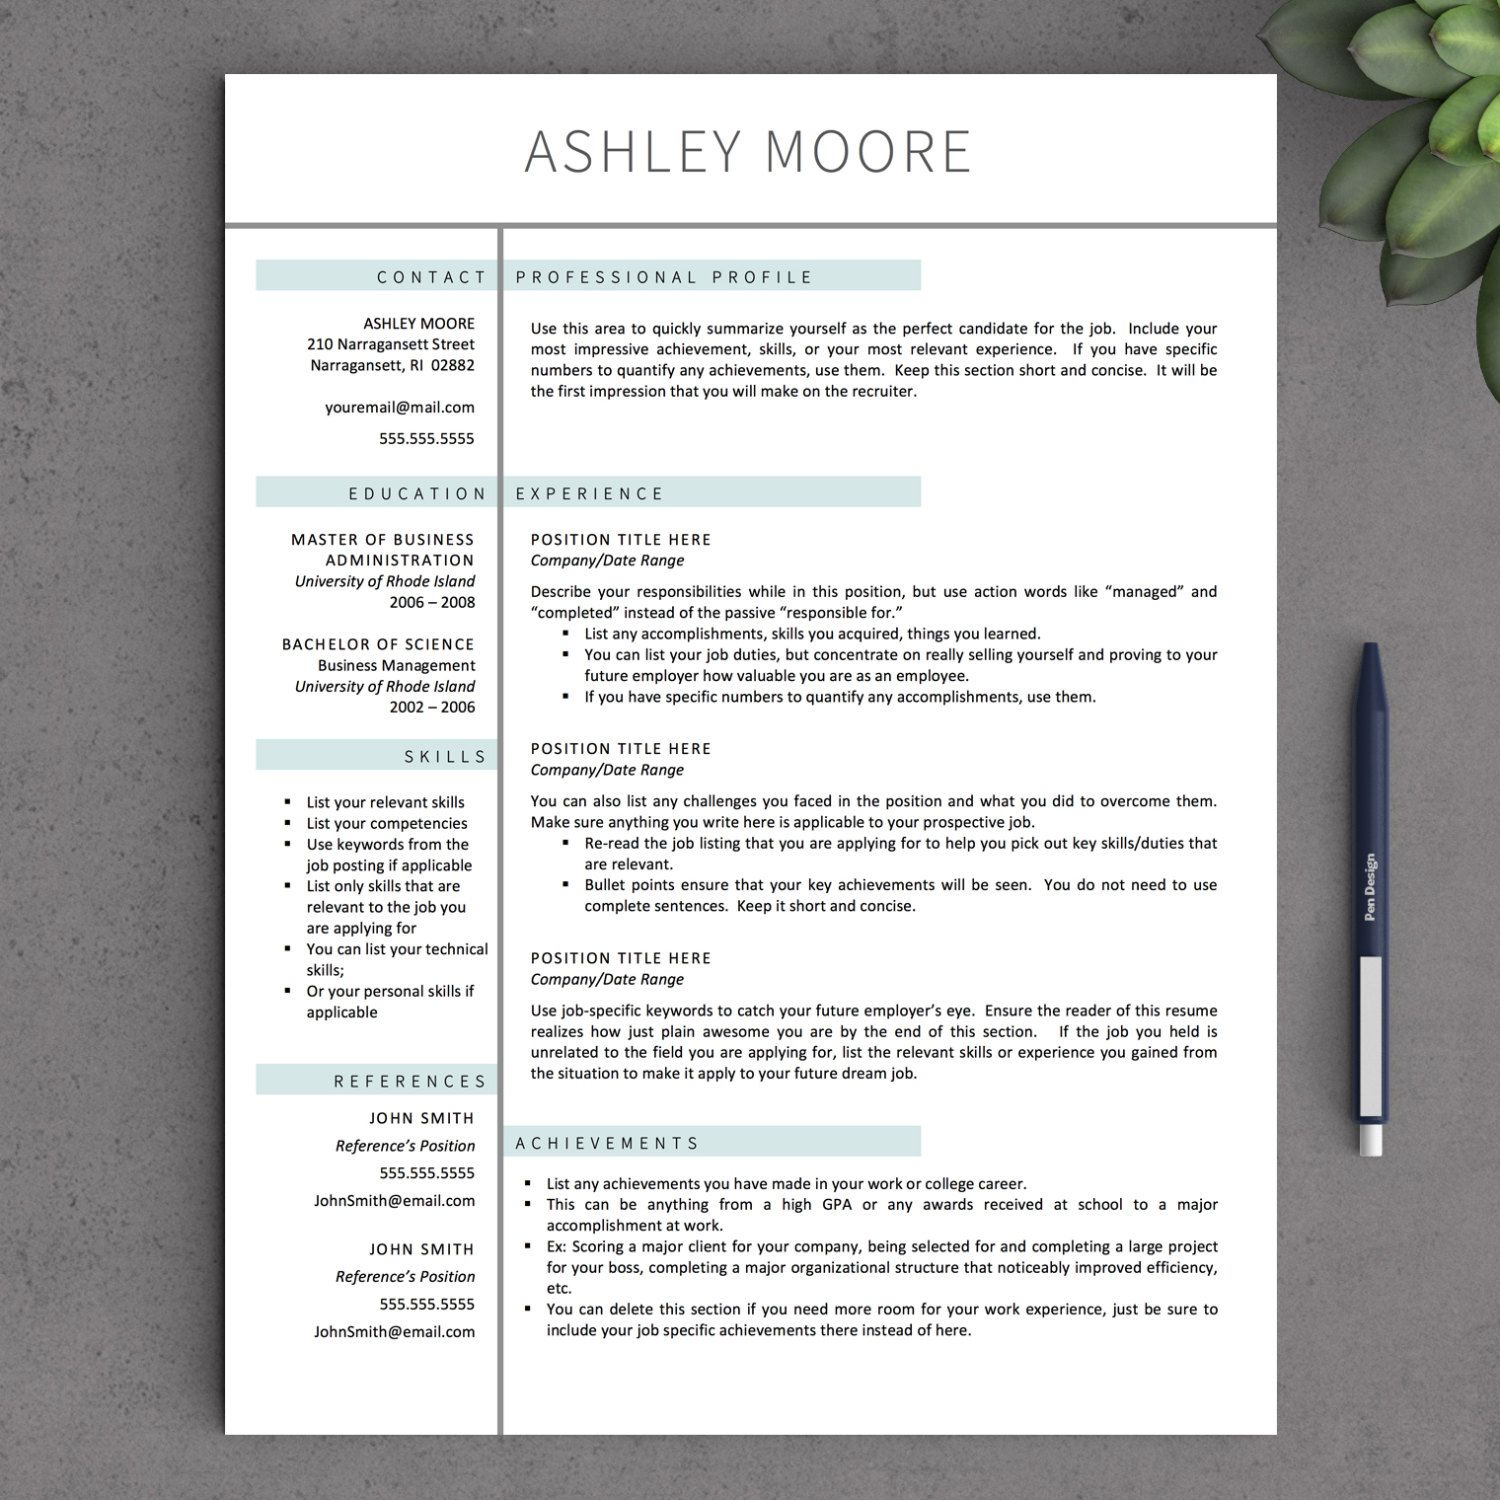 Apple Pages Resume Template Download Apple Pages Resume Template Download,  Appleu2026  Resumes Free Download